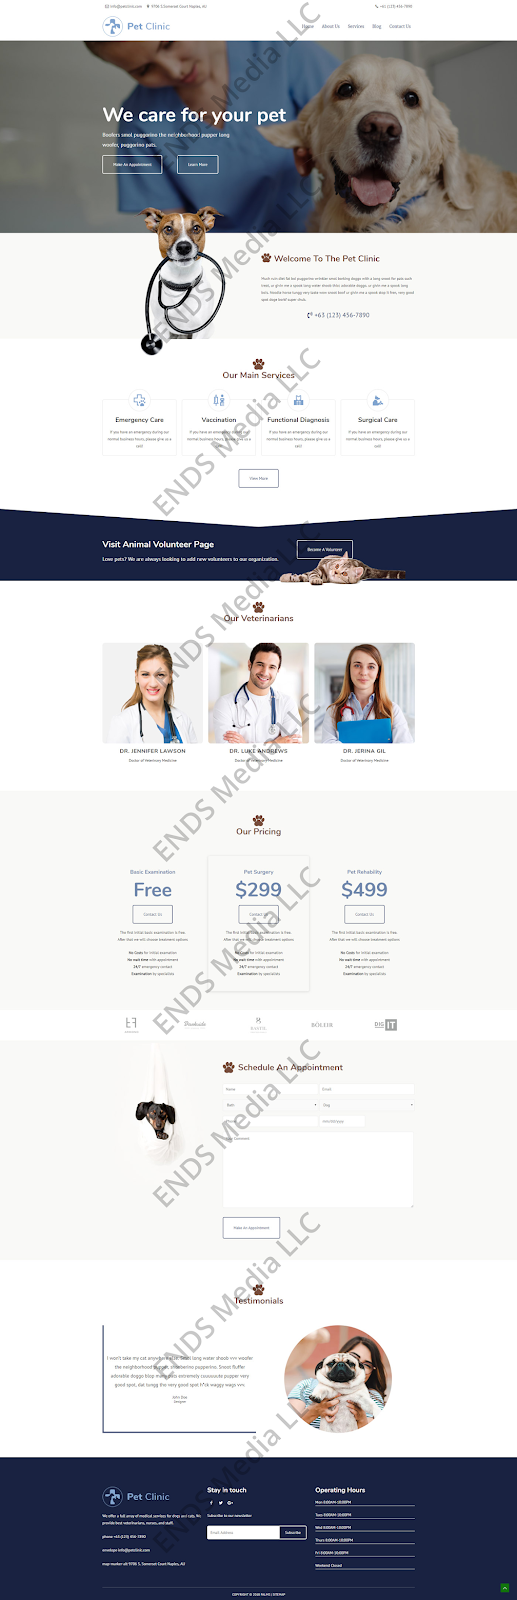 ENDS Media Health Industry, Wellness, and Veterinarian Web site design Portfolio